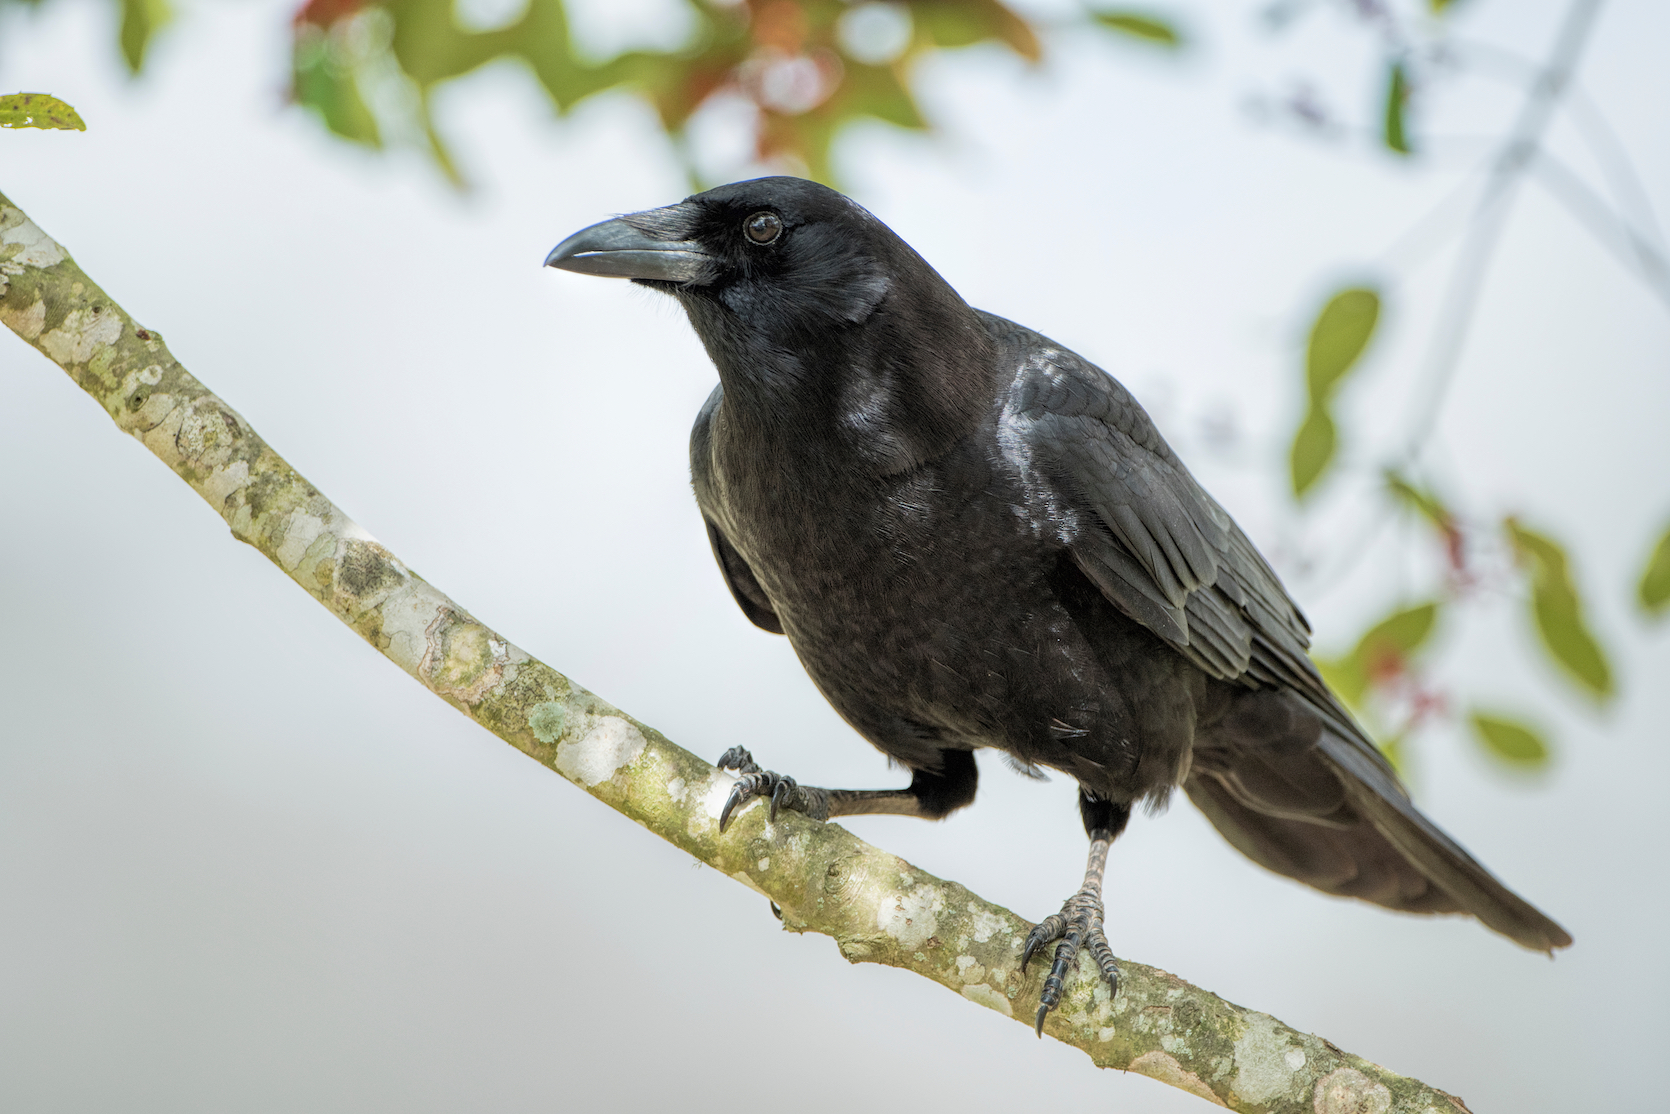 New research has revealed that crows are intelligent enough to construct their own tools from memory and even refine them over time.